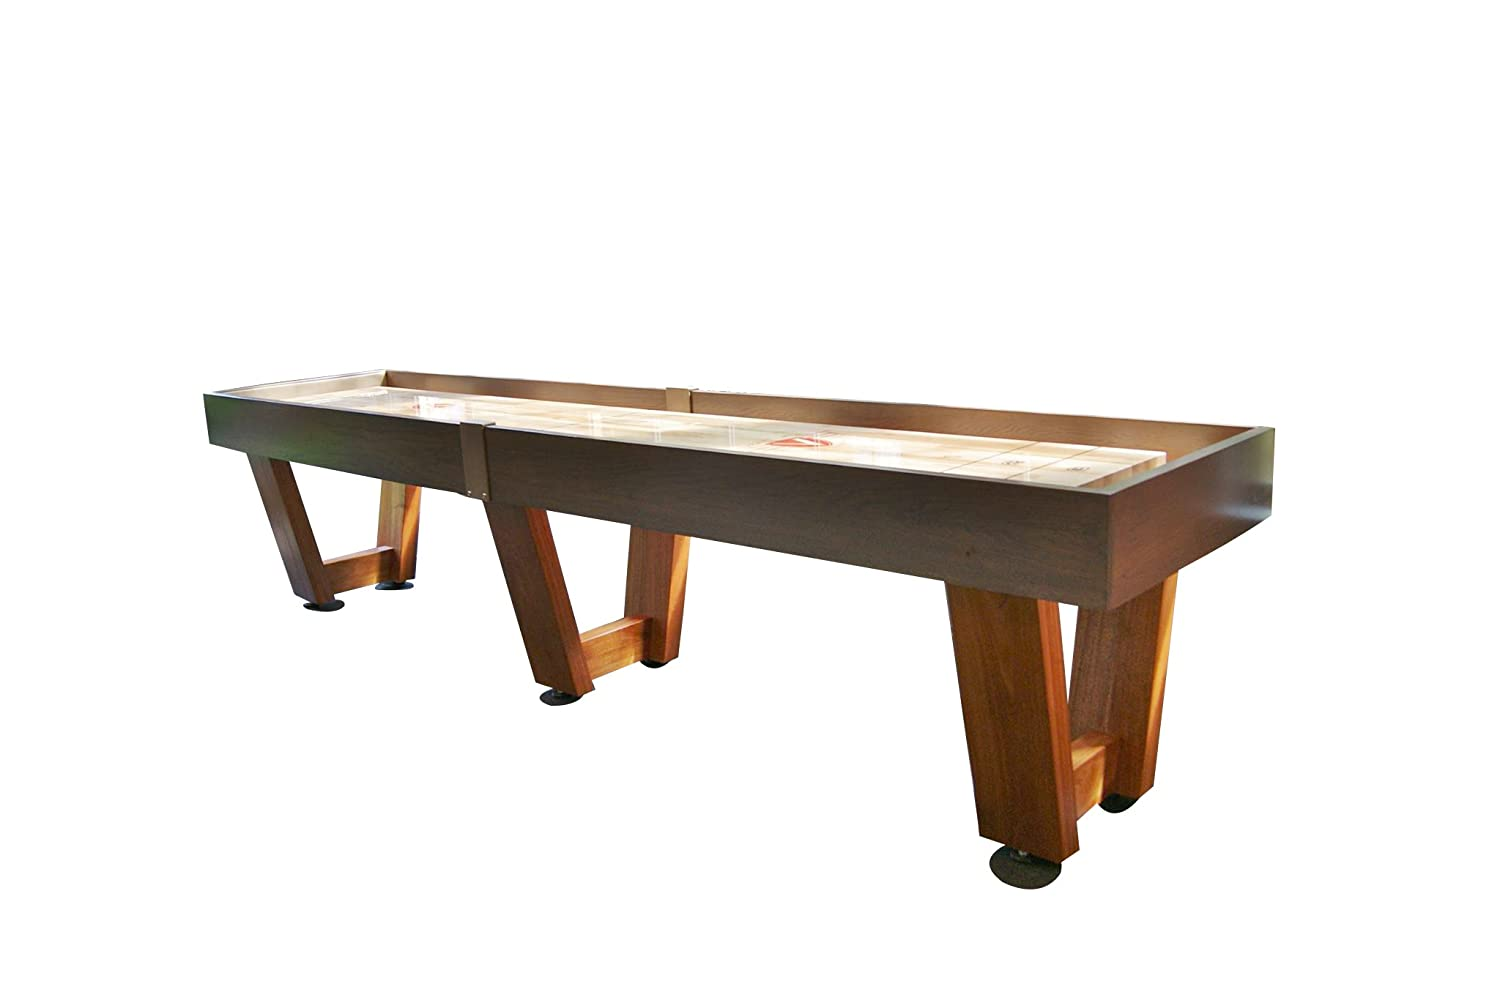 Monaco Shuffleboard Table U2013 Gaming Board With Playing Accessories U2013  Gameroom Furniture U2013 Wood Game Table With Ash U0026 Grey Stain   12u0027/14u0027/  16u0027/18u0027/20u0027/22u0027 ...